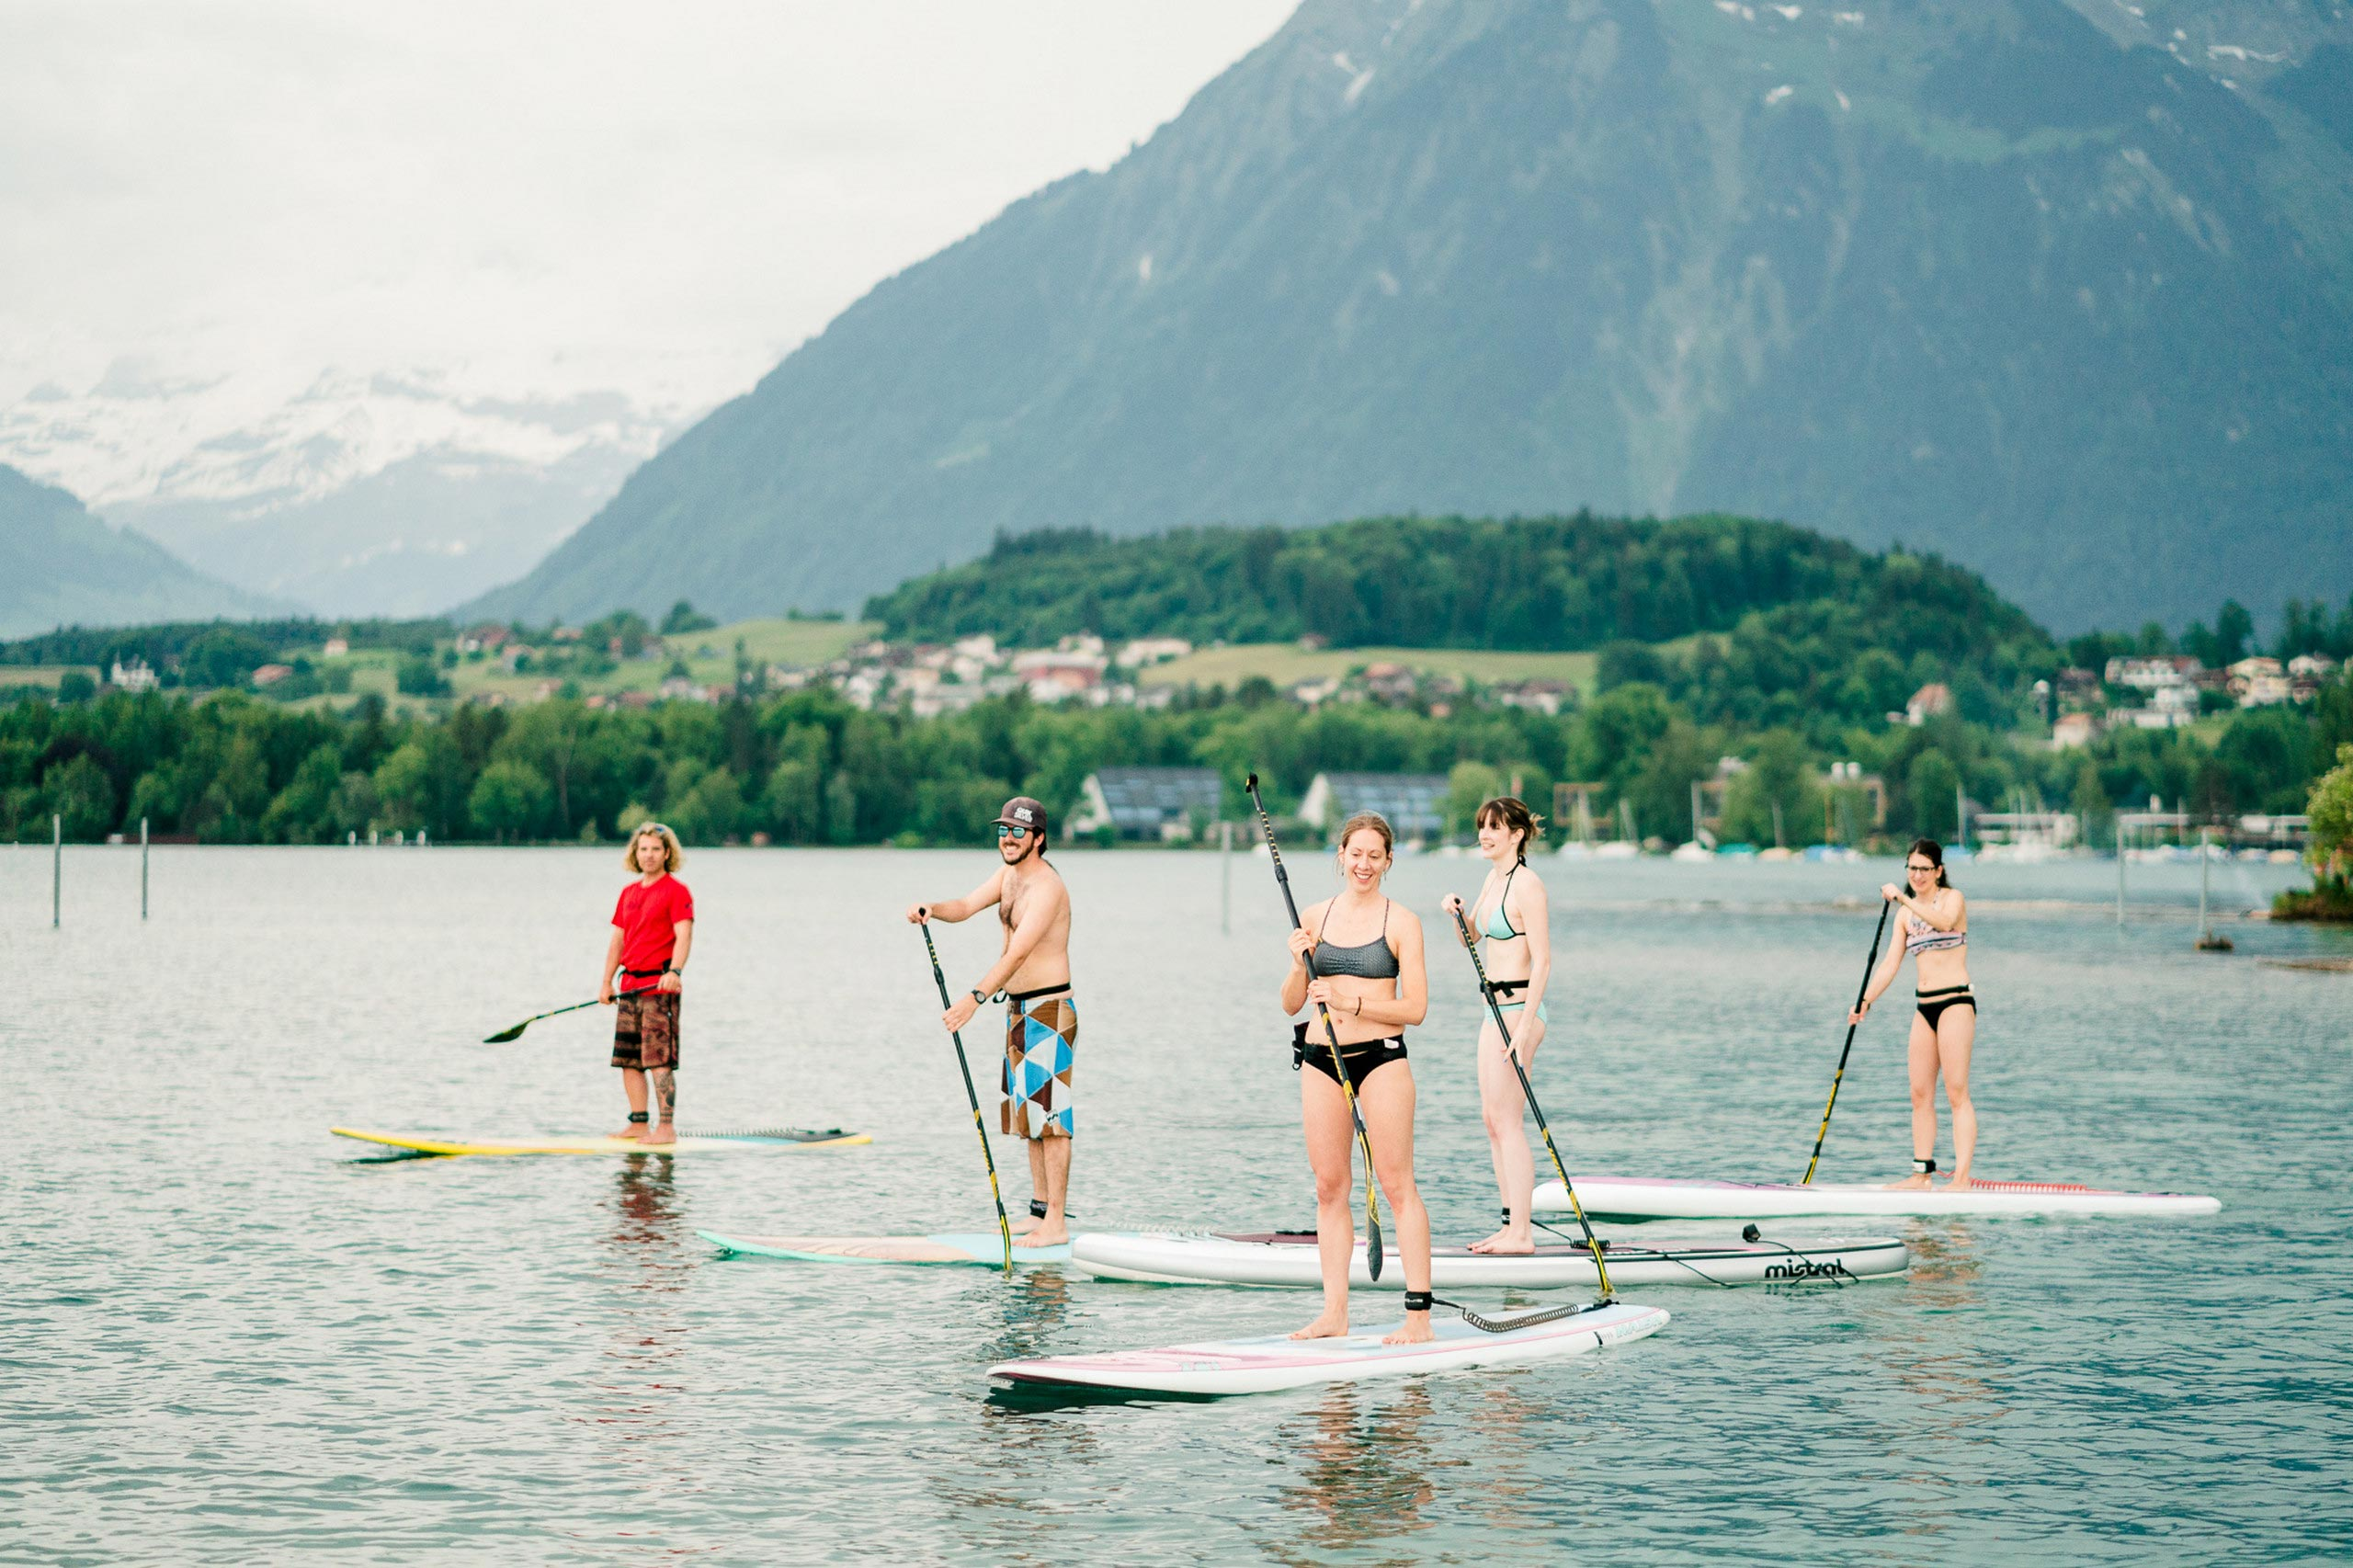 honu-sup-center-sommer-sup-gruppe